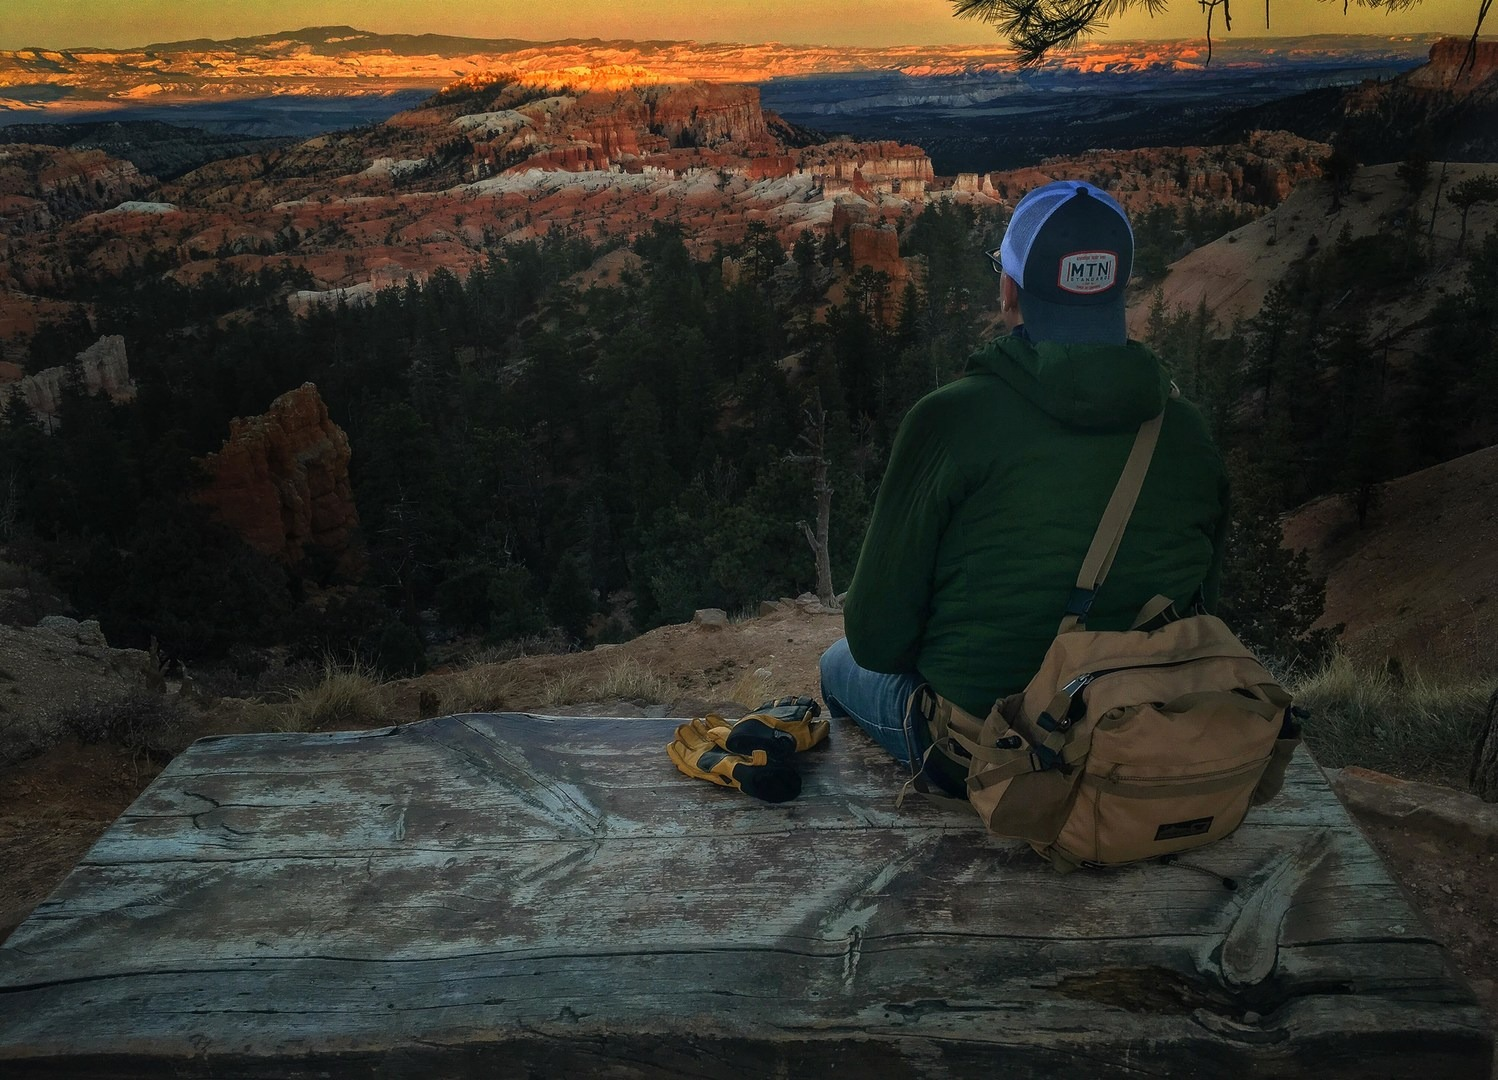 Sunset at Bryce Canyon.